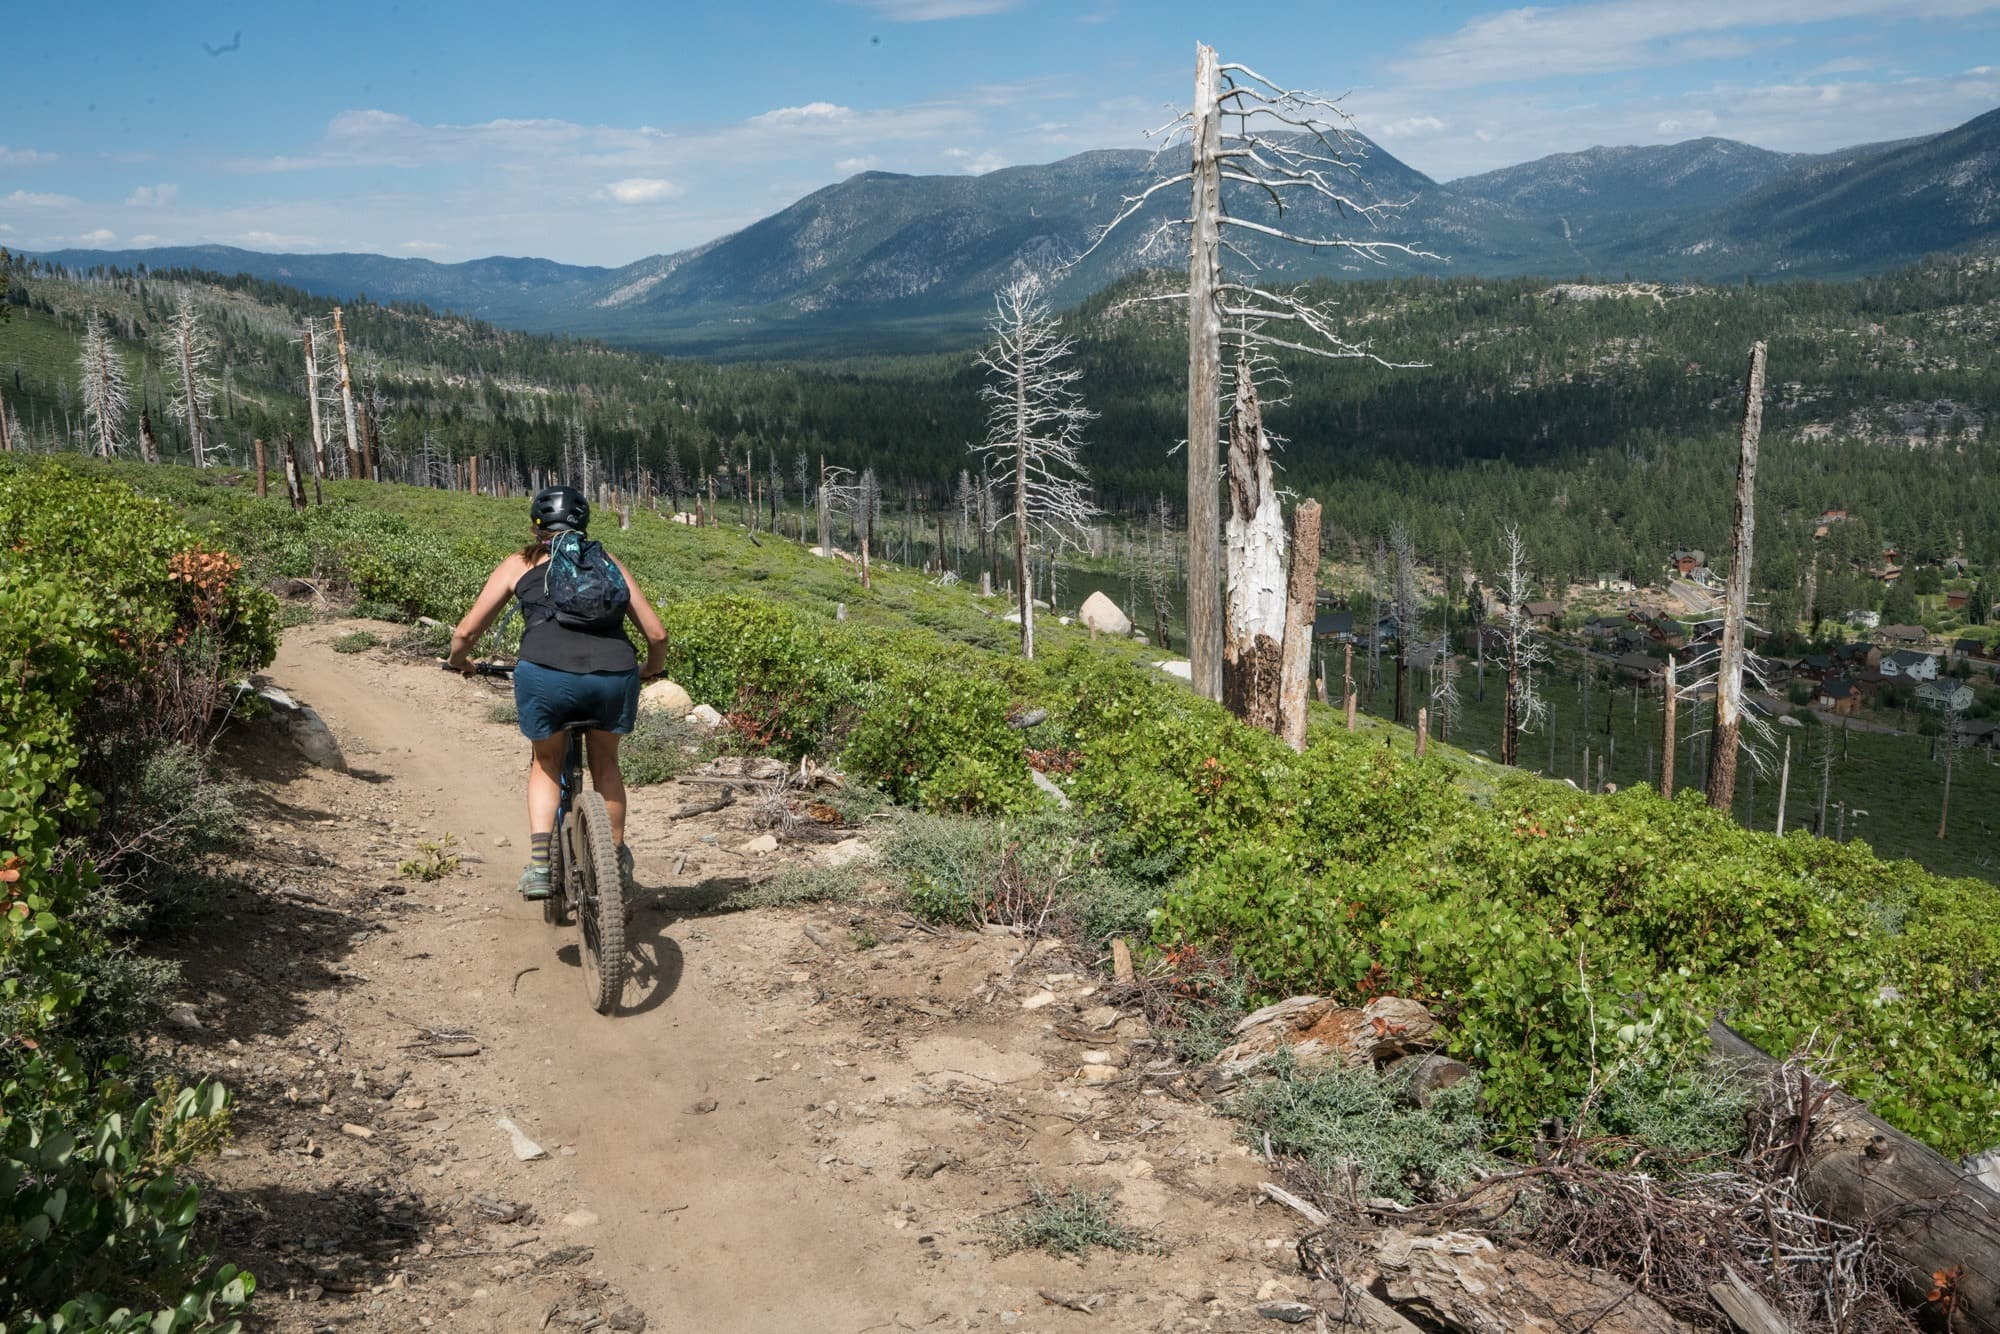 Mountain Bike the Angora Ridge Trail // Planning an adventure-packed vacation to Lake Tahoe? Here are 12 of the best things to do around Lake Tahoe for the outdoor enthusiast.